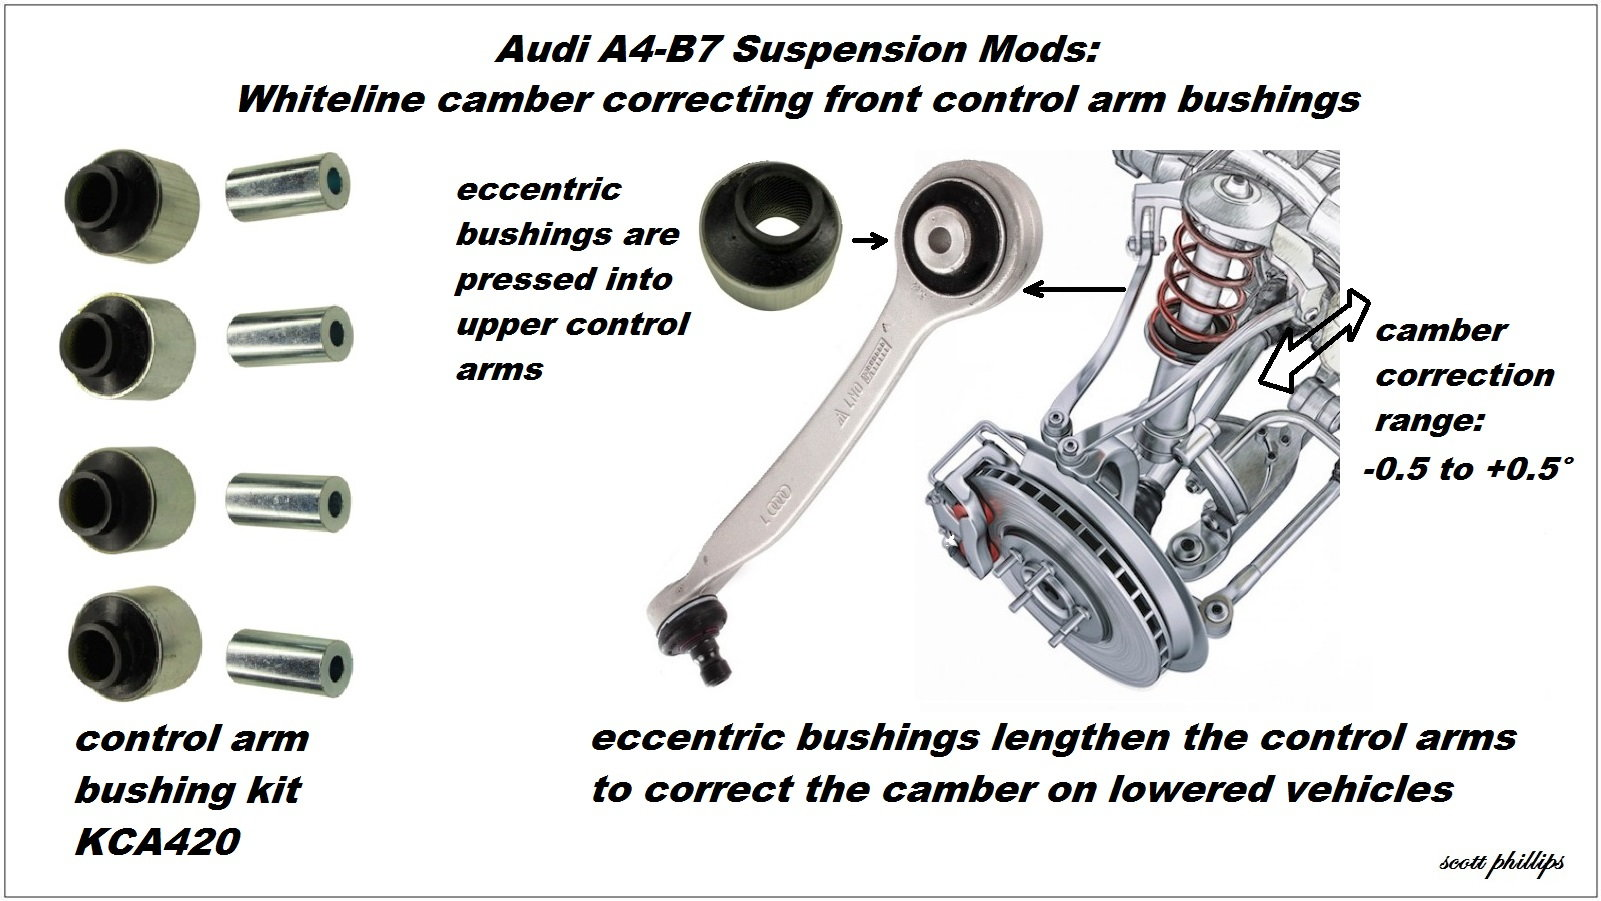 2007 Audi A4 Front Suspension Diagram on saab 9 3 engine diagram